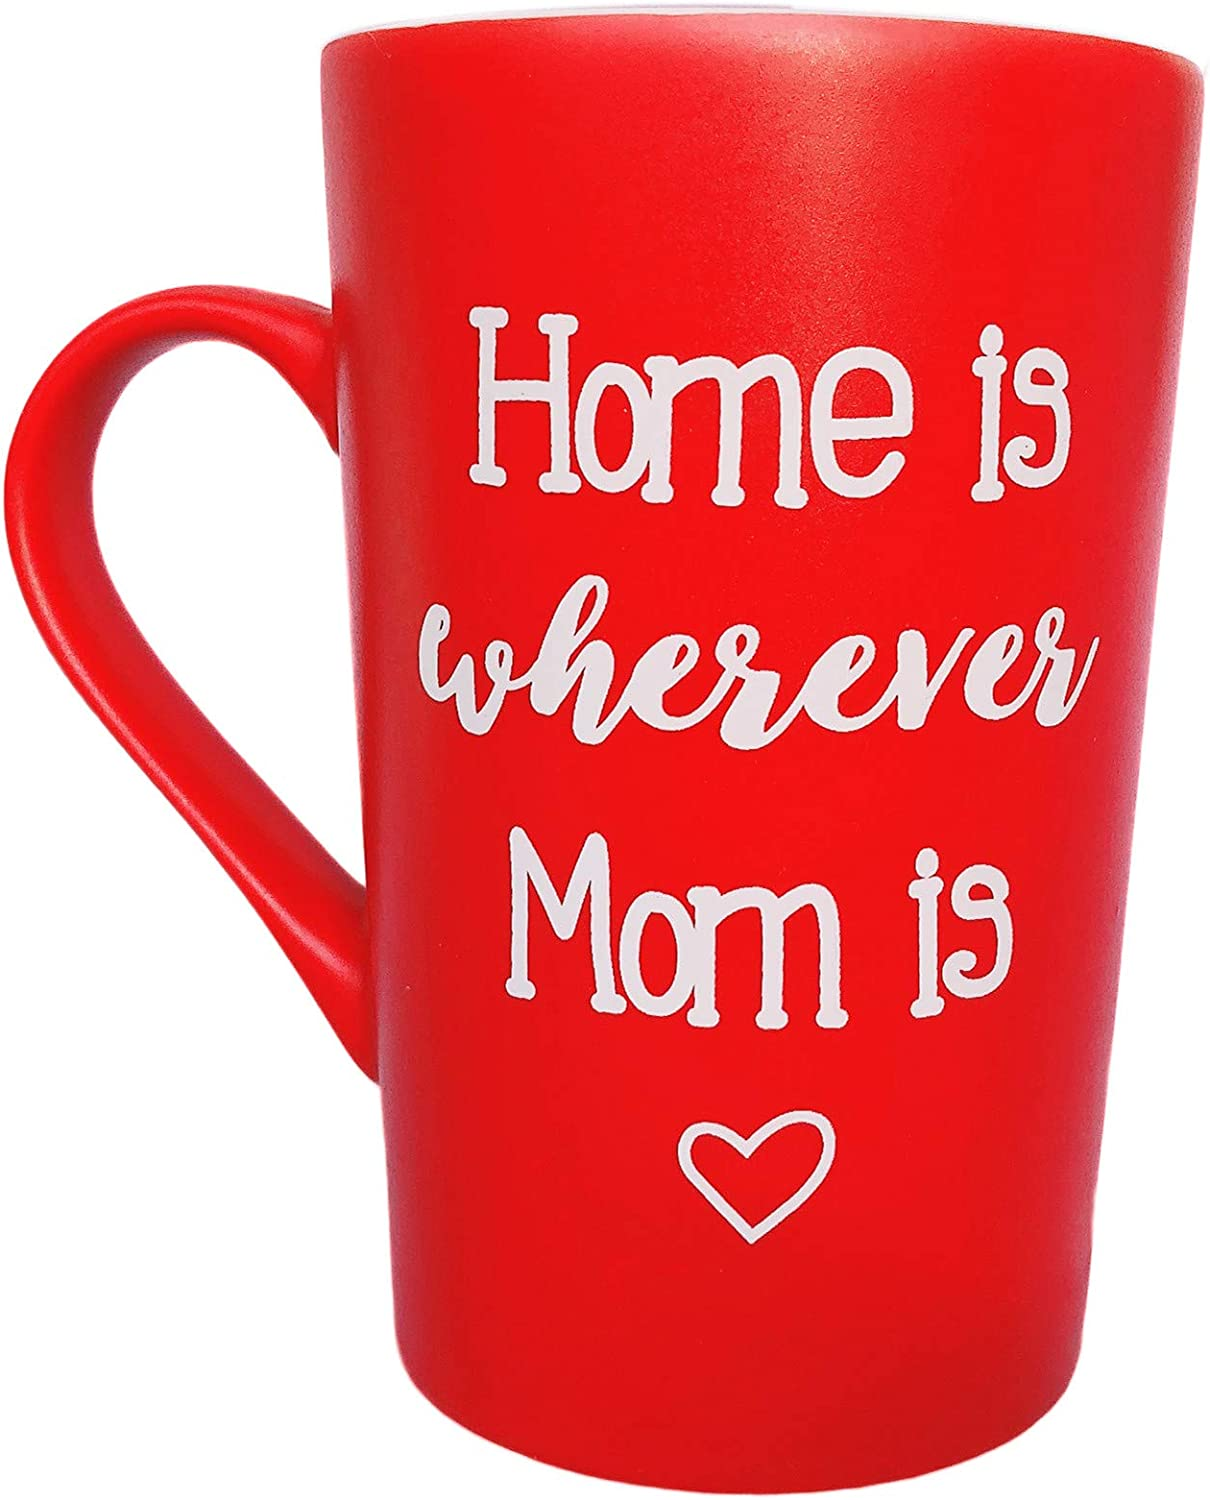 MAUAG Mothers Day Gifts Funny Inspirational Coffee Mug for Mom, Home Is Wherever Mom Is Cute Present from Daughter or Son Fun Cup Red, 12 Oz